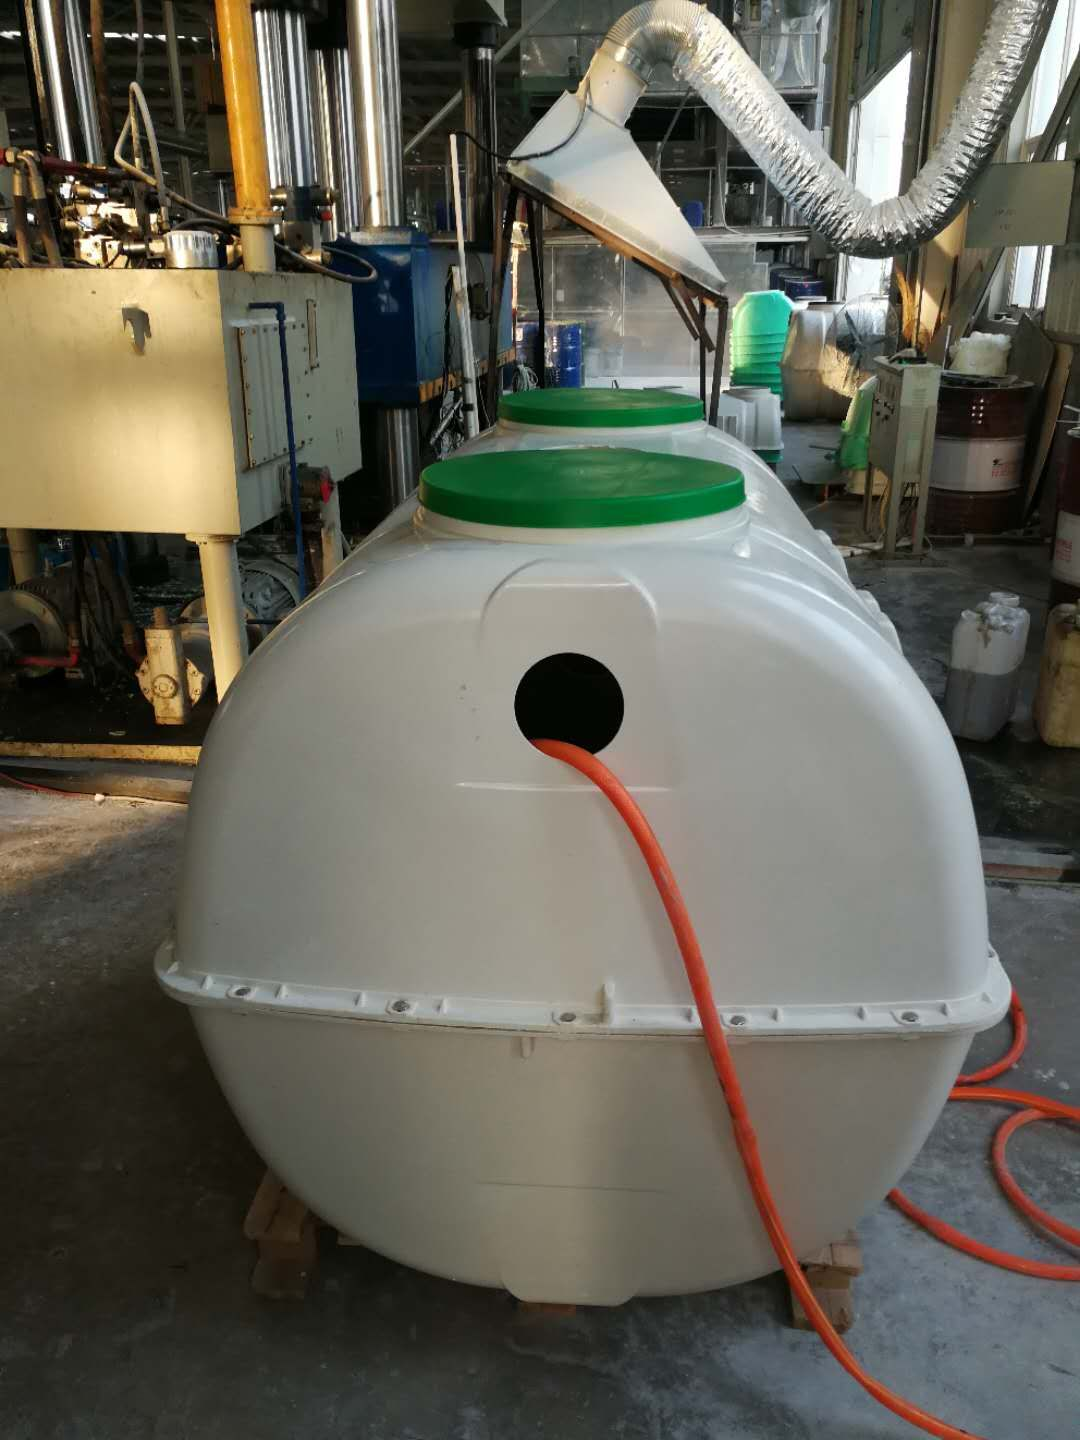 Fiberglass Septic Tank Has Good Tightness And No Leakage During Integrated Production It Covers A Small Area Fiberglass Septic Tank Fiberglass Tank